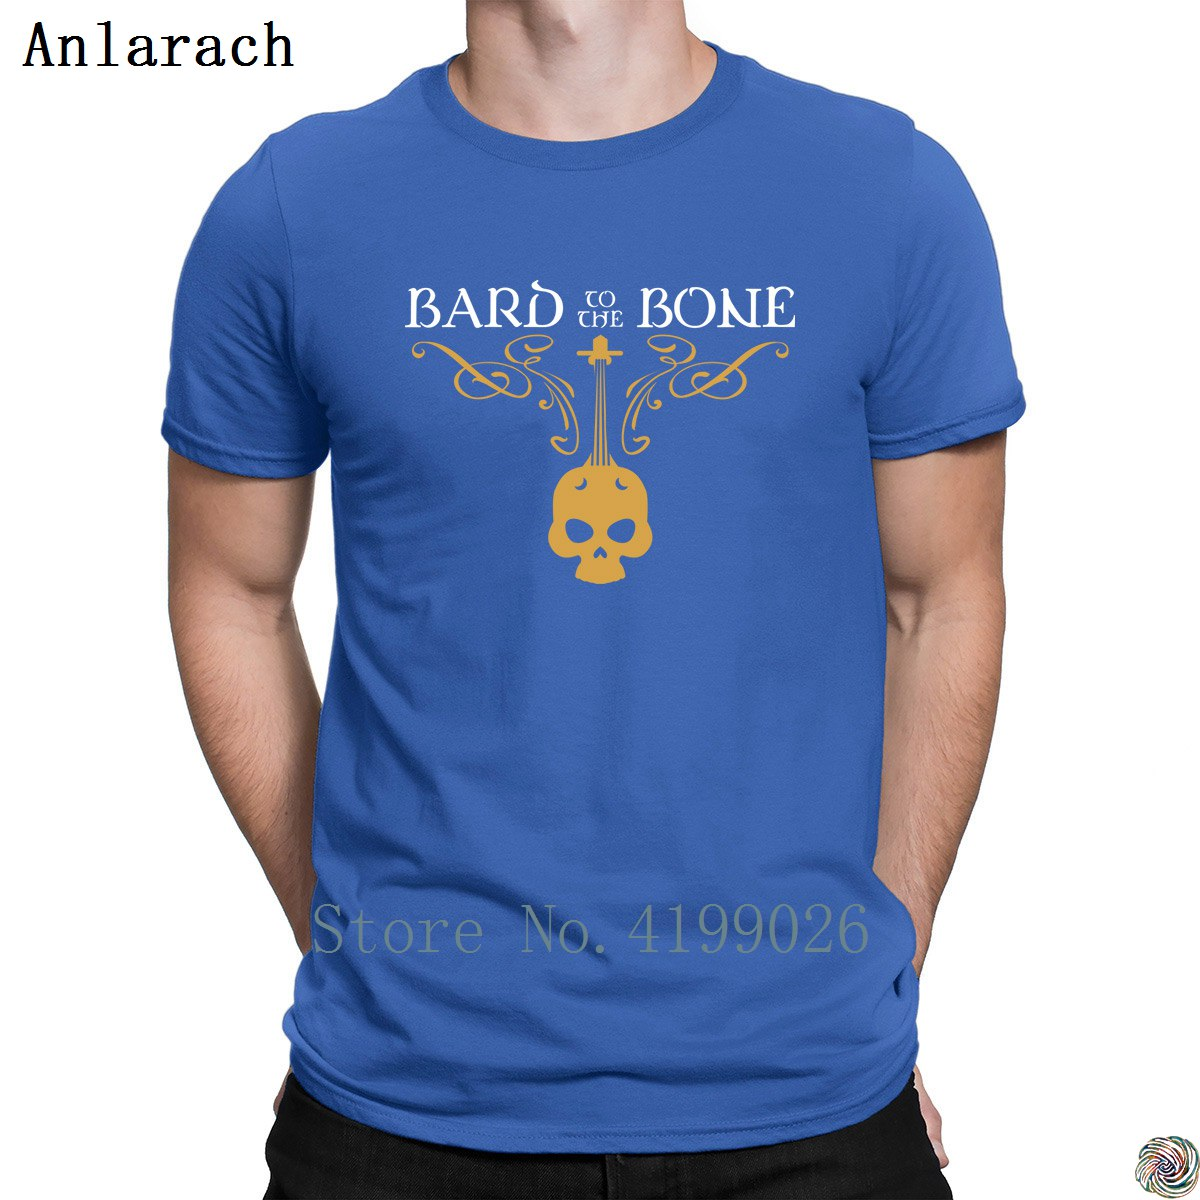 Bard To The Bone Dungeons And Dragons Inspired DnD Tshirts Summer Style Hilarious Normal Men's Tshirt Create Clothing Tee Top